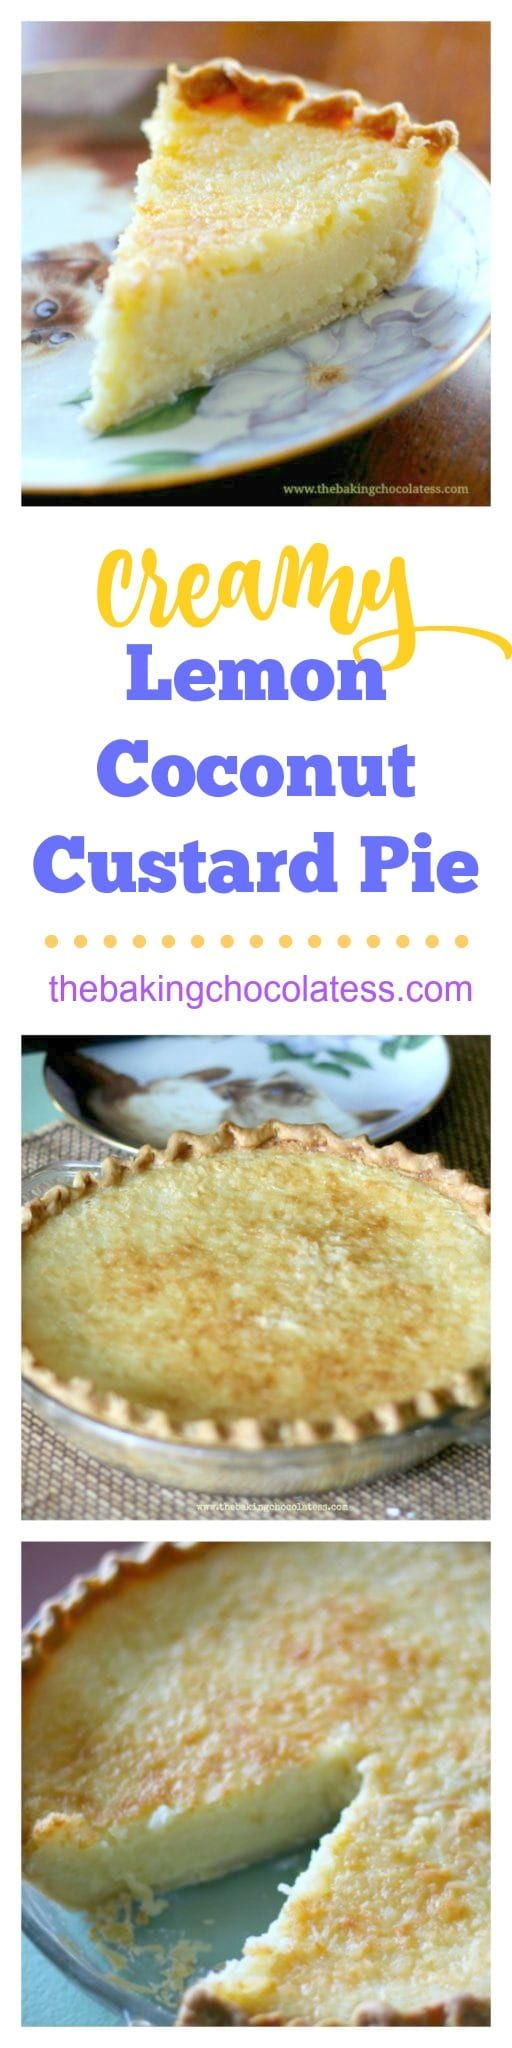 Creamy Lemon Coconut Custard Pie via @https://www.pinterest.com/BaknChocolaTess/